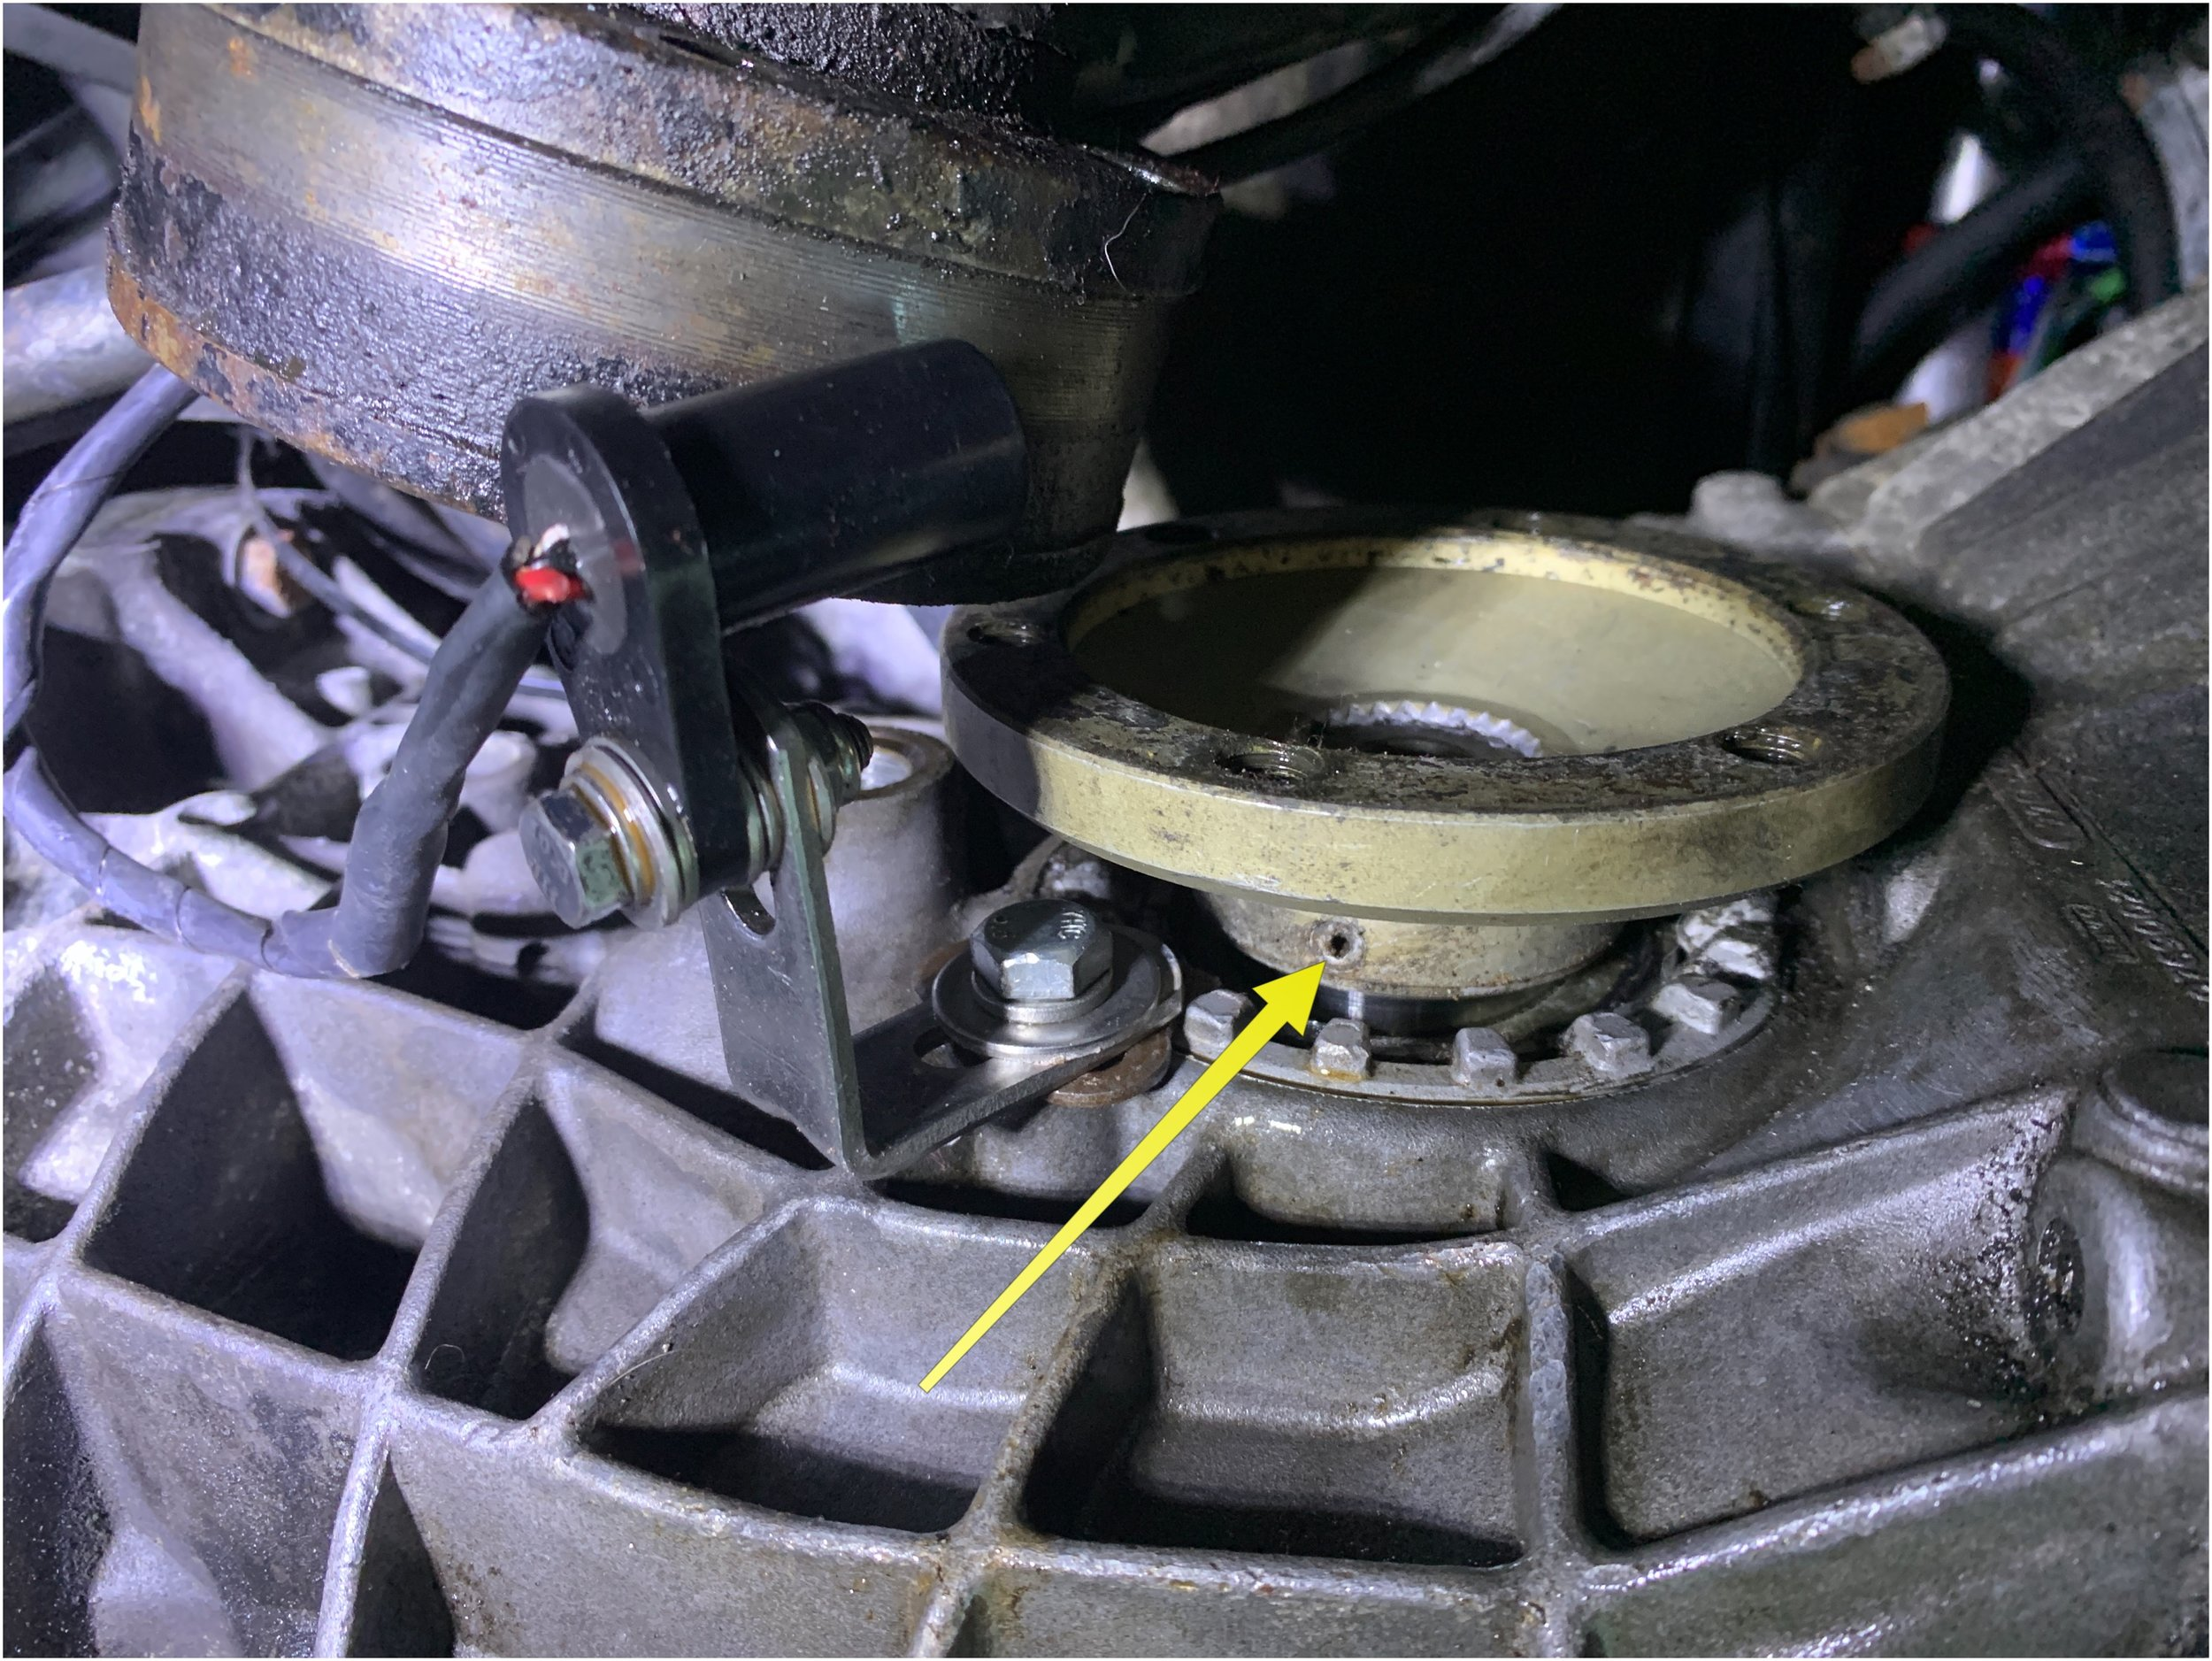 After unbolting the axle, the roll pin has to be tapped out with a 6 mm punch. Make sure the flange is rotated so that the pin won't get stuck against the transmission case once it is mostly tapped out.